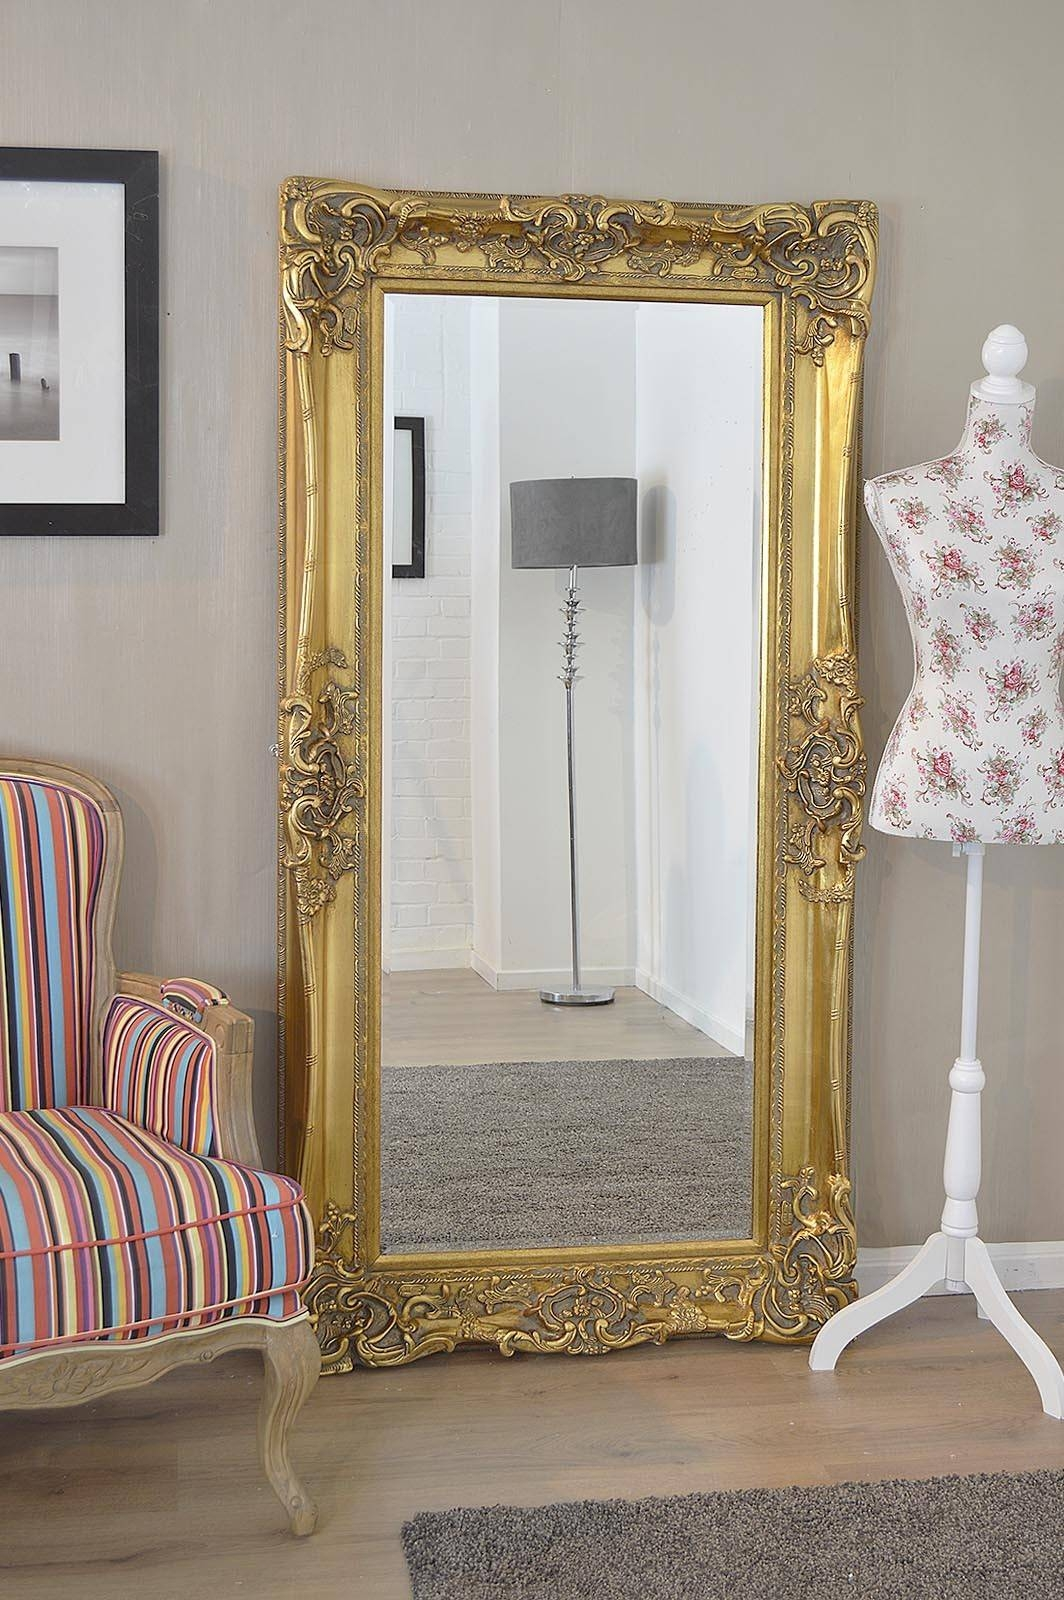 Giant Mirrors For Sale 126 Outstanding For Large Frame Gold intended for Antique Gold Mirrors (Image 15 of 25)